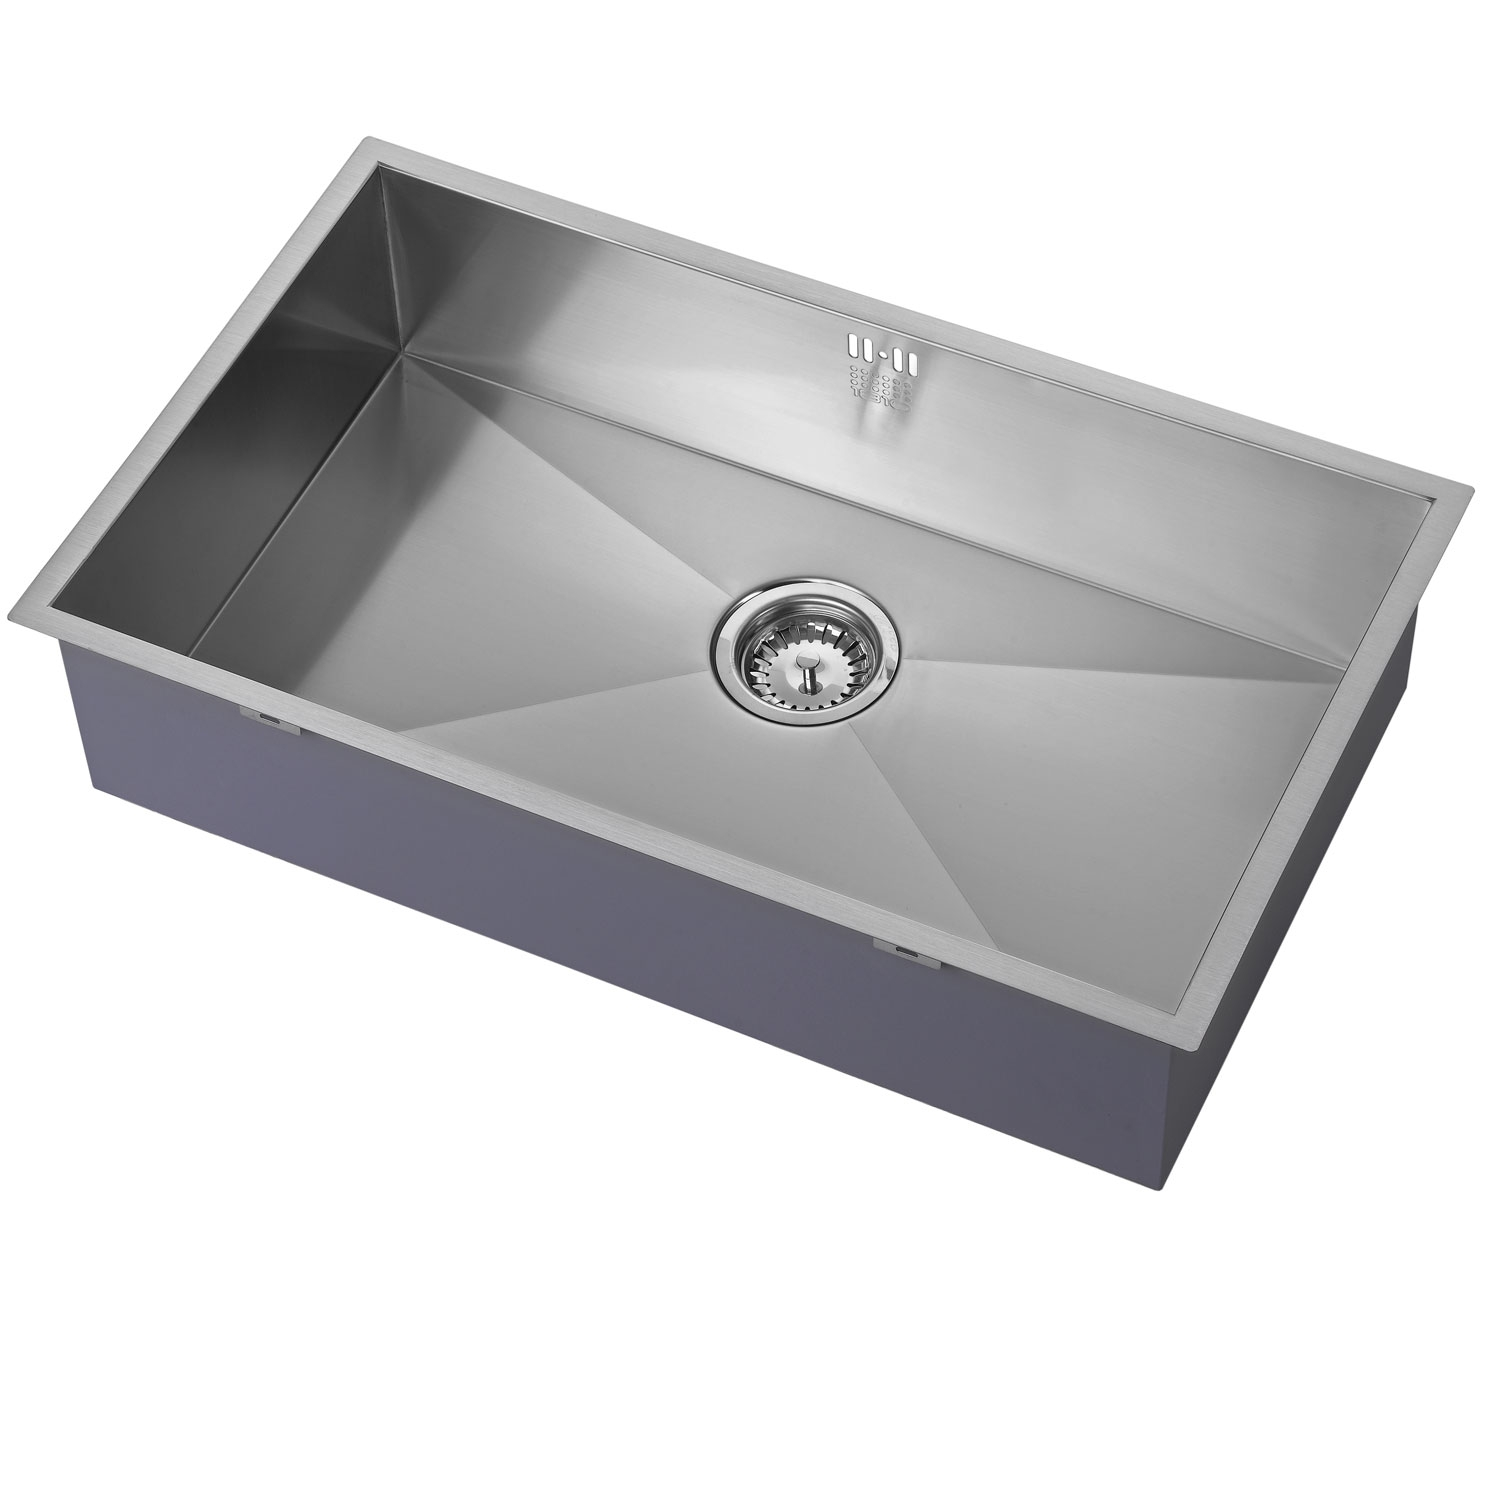 The 1810 Company Zenuno 700U 1.0 Bowl Kitchen Sink - Stainless Steel